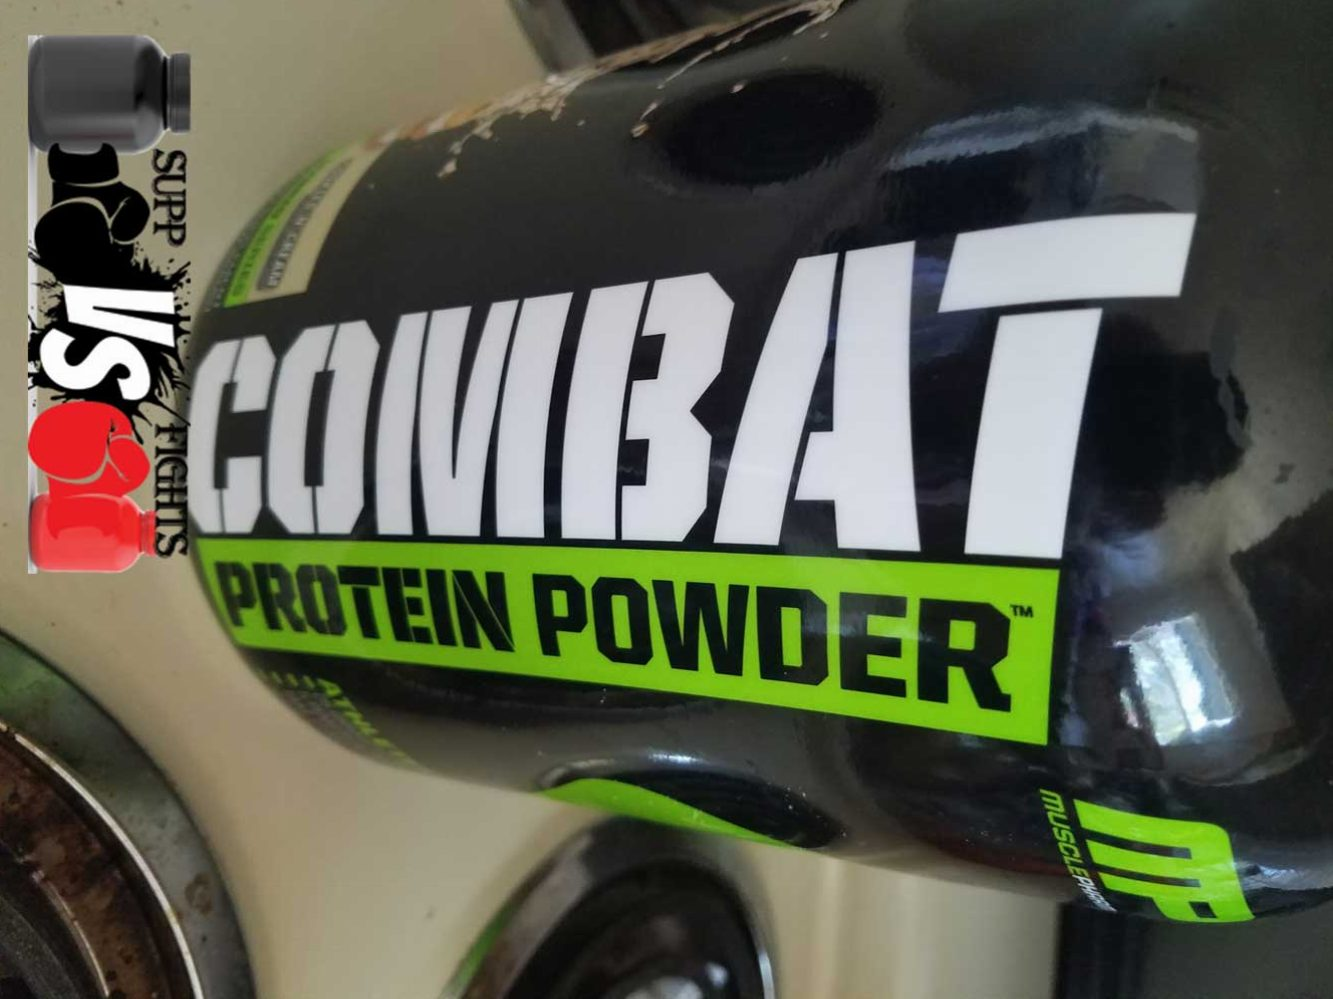 Combat Powder Protein Review - Muscle Pharm Supplement Reviews & Comparison Hub